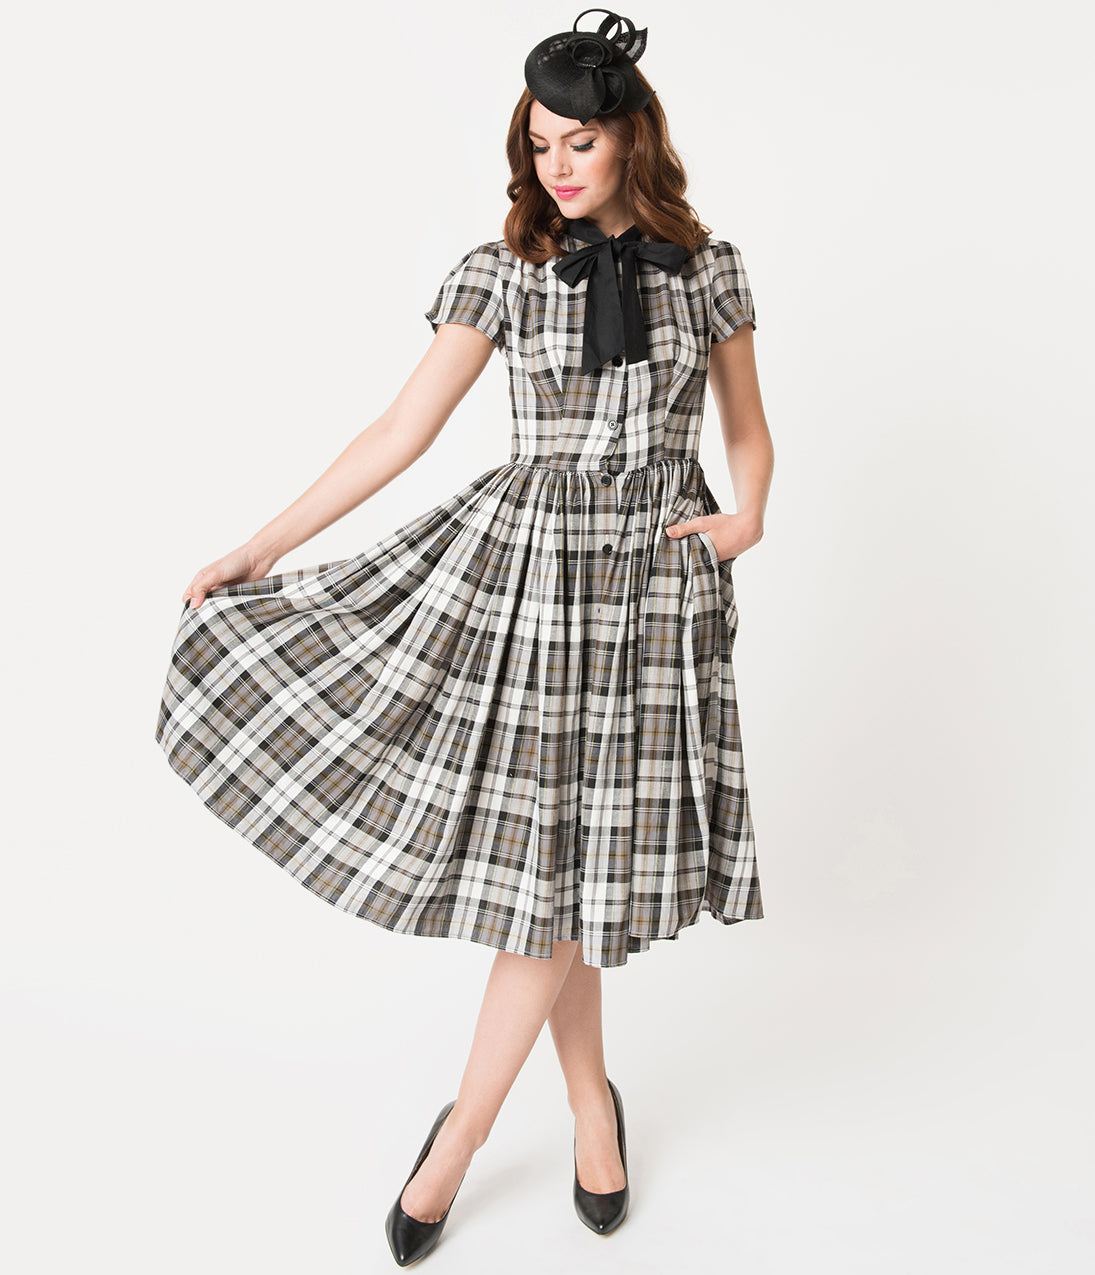 1950s Dresses, 50s Dresses | 1950s Style Dresses Unique Vintage 1950S Style Grey Plaid Button Up Swing Dress $98.00 AT vintagedancer.com